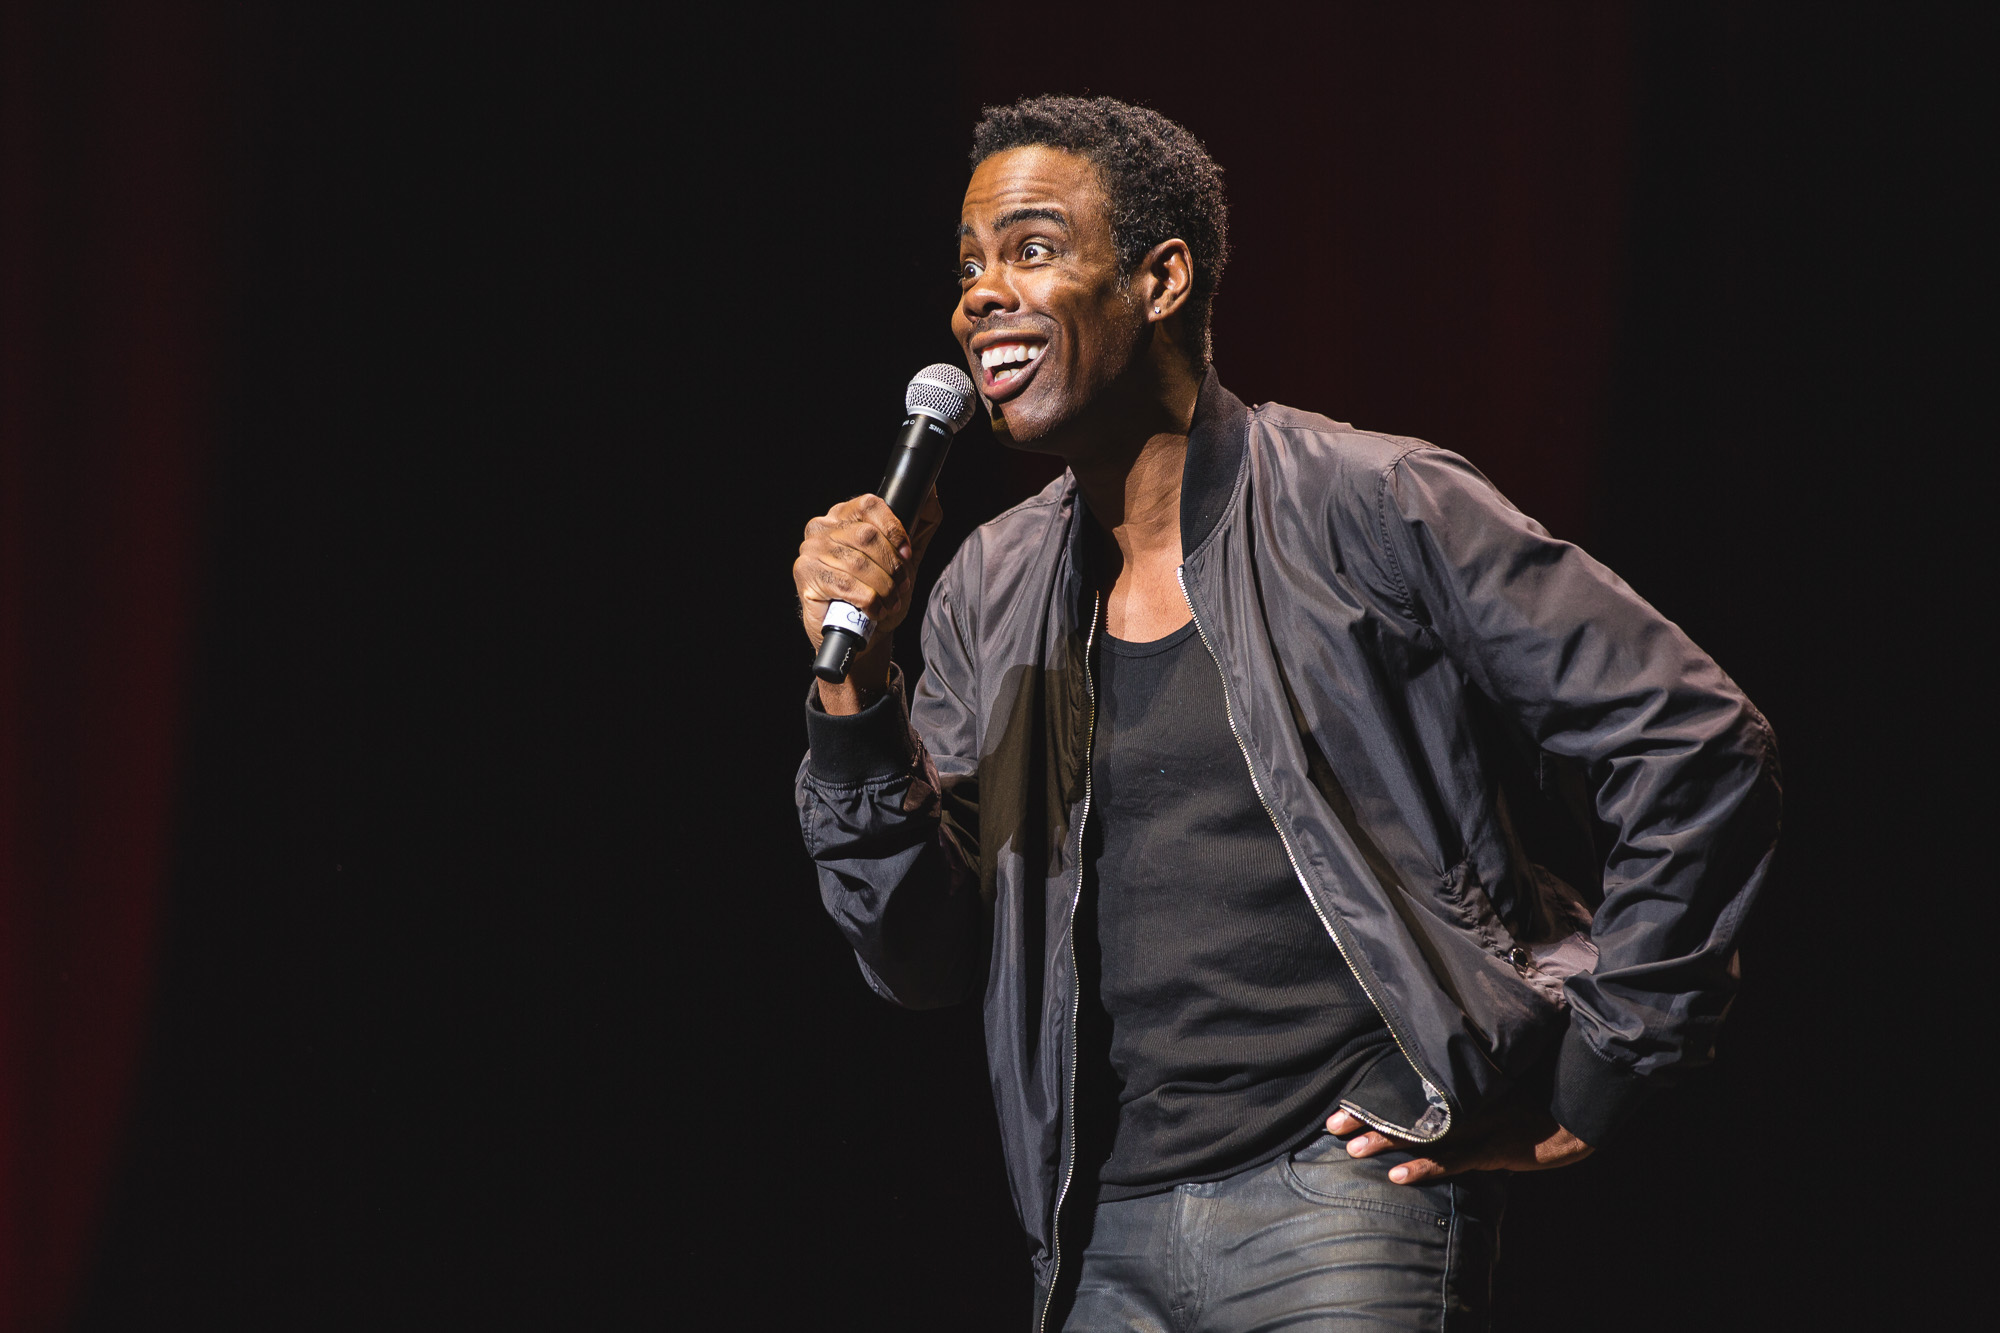 chris_rock-20.jpg